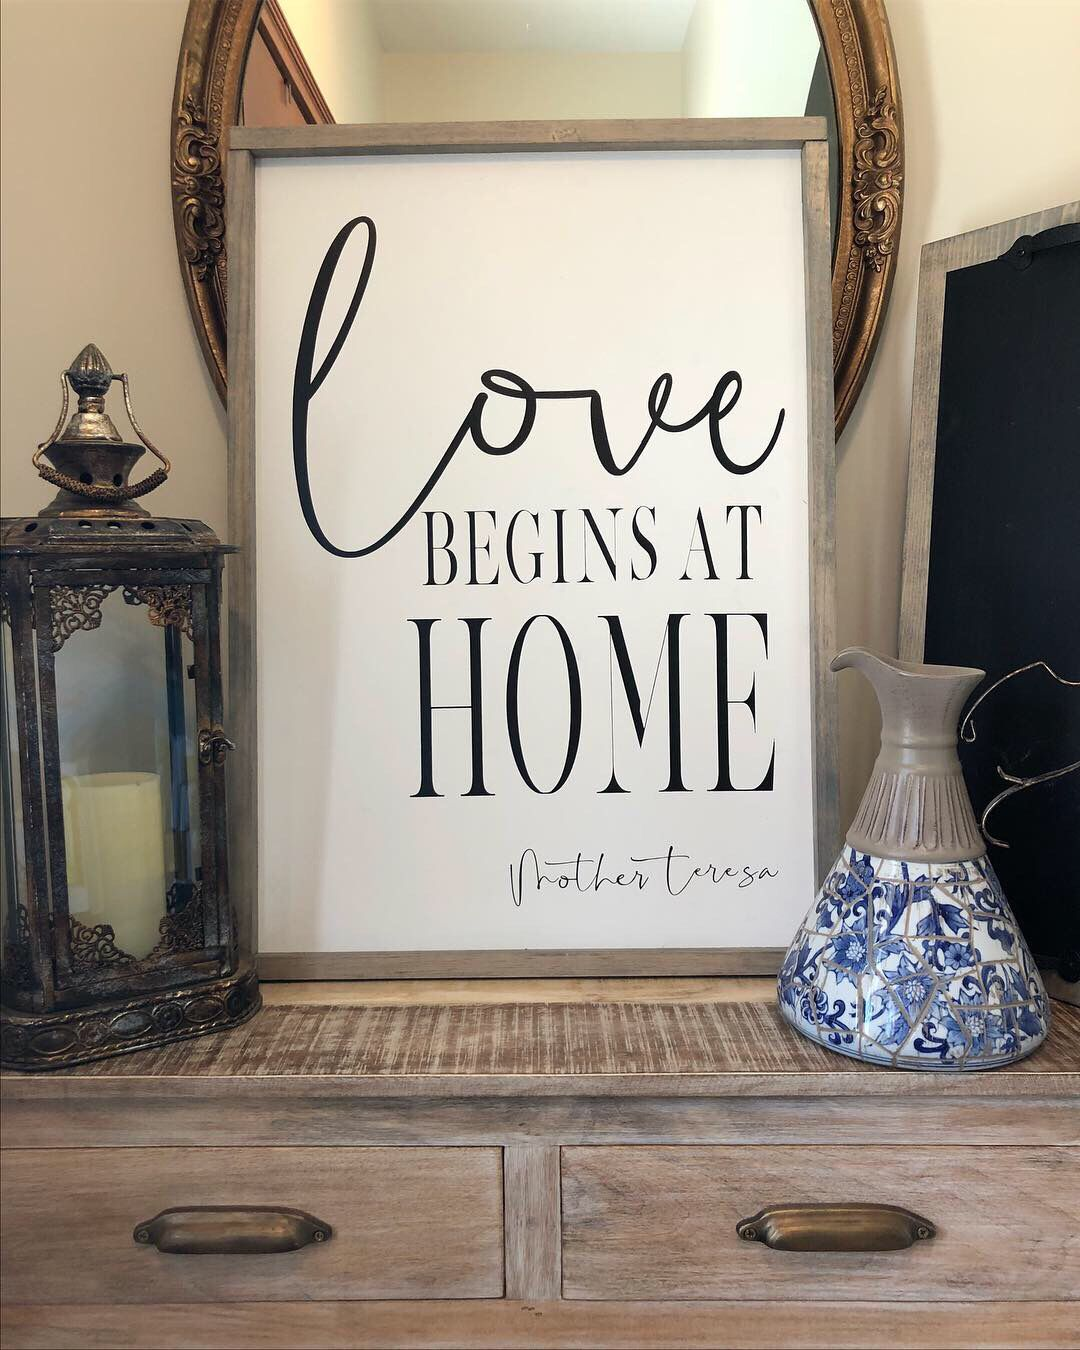 Wood Sign Painted Wood Sign Housewarming Gift Home Decor Home Signs Signs Country Living Signs Home Wooden Signs Home Decor Signs Home Decor Quotes